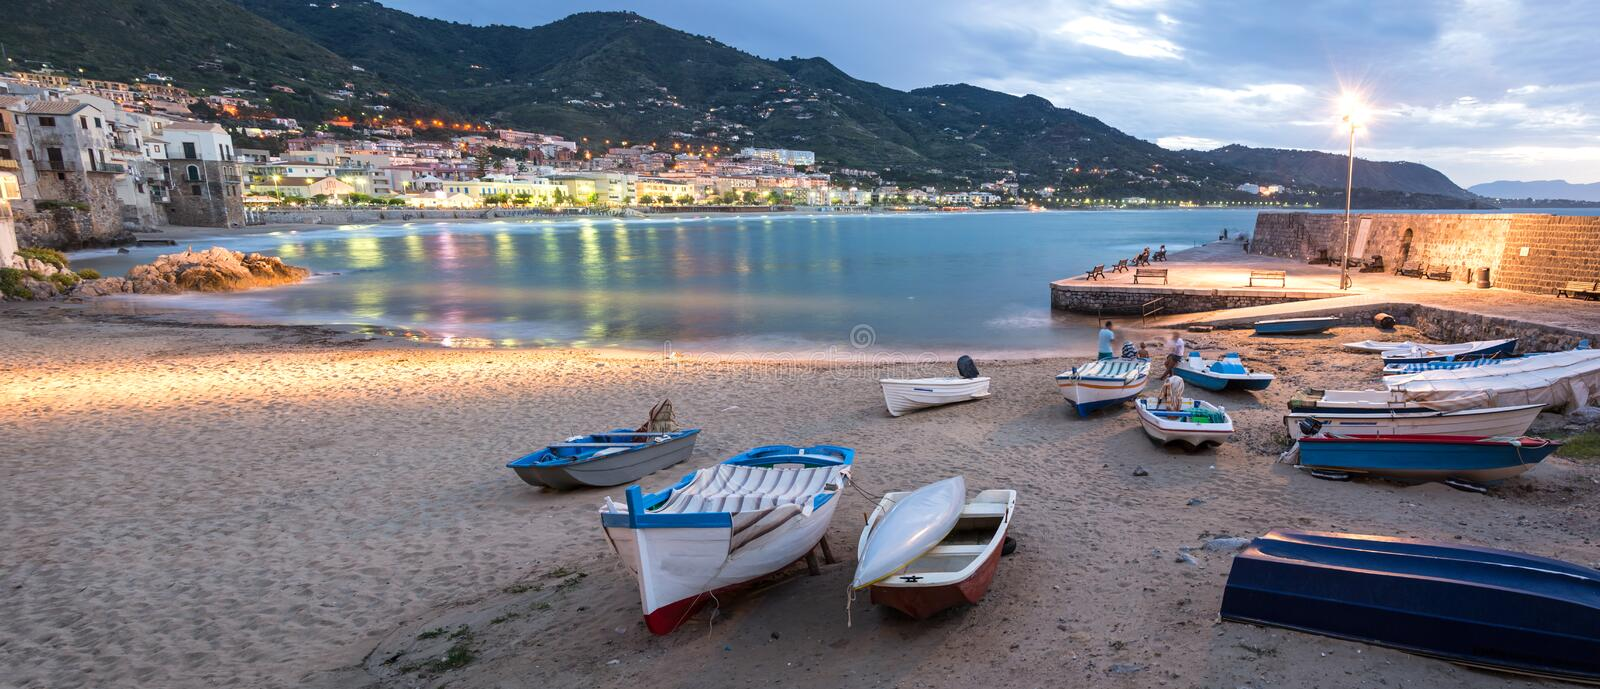 Panorama night shot of beautiful bay and fishing boats in Cefalu, Sicily, Italy royalty free stock images